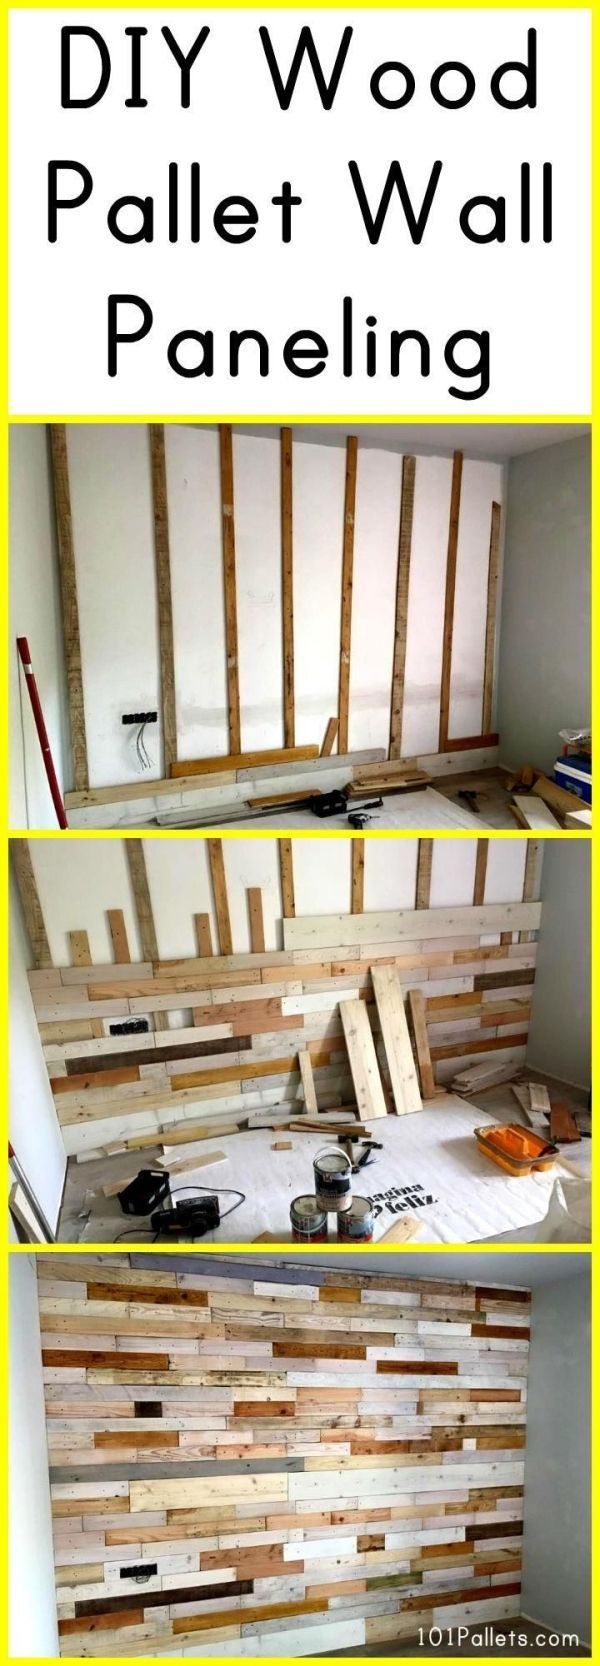 DIY Wood Pallet Wall Paneling | 101 Pallets More by deena